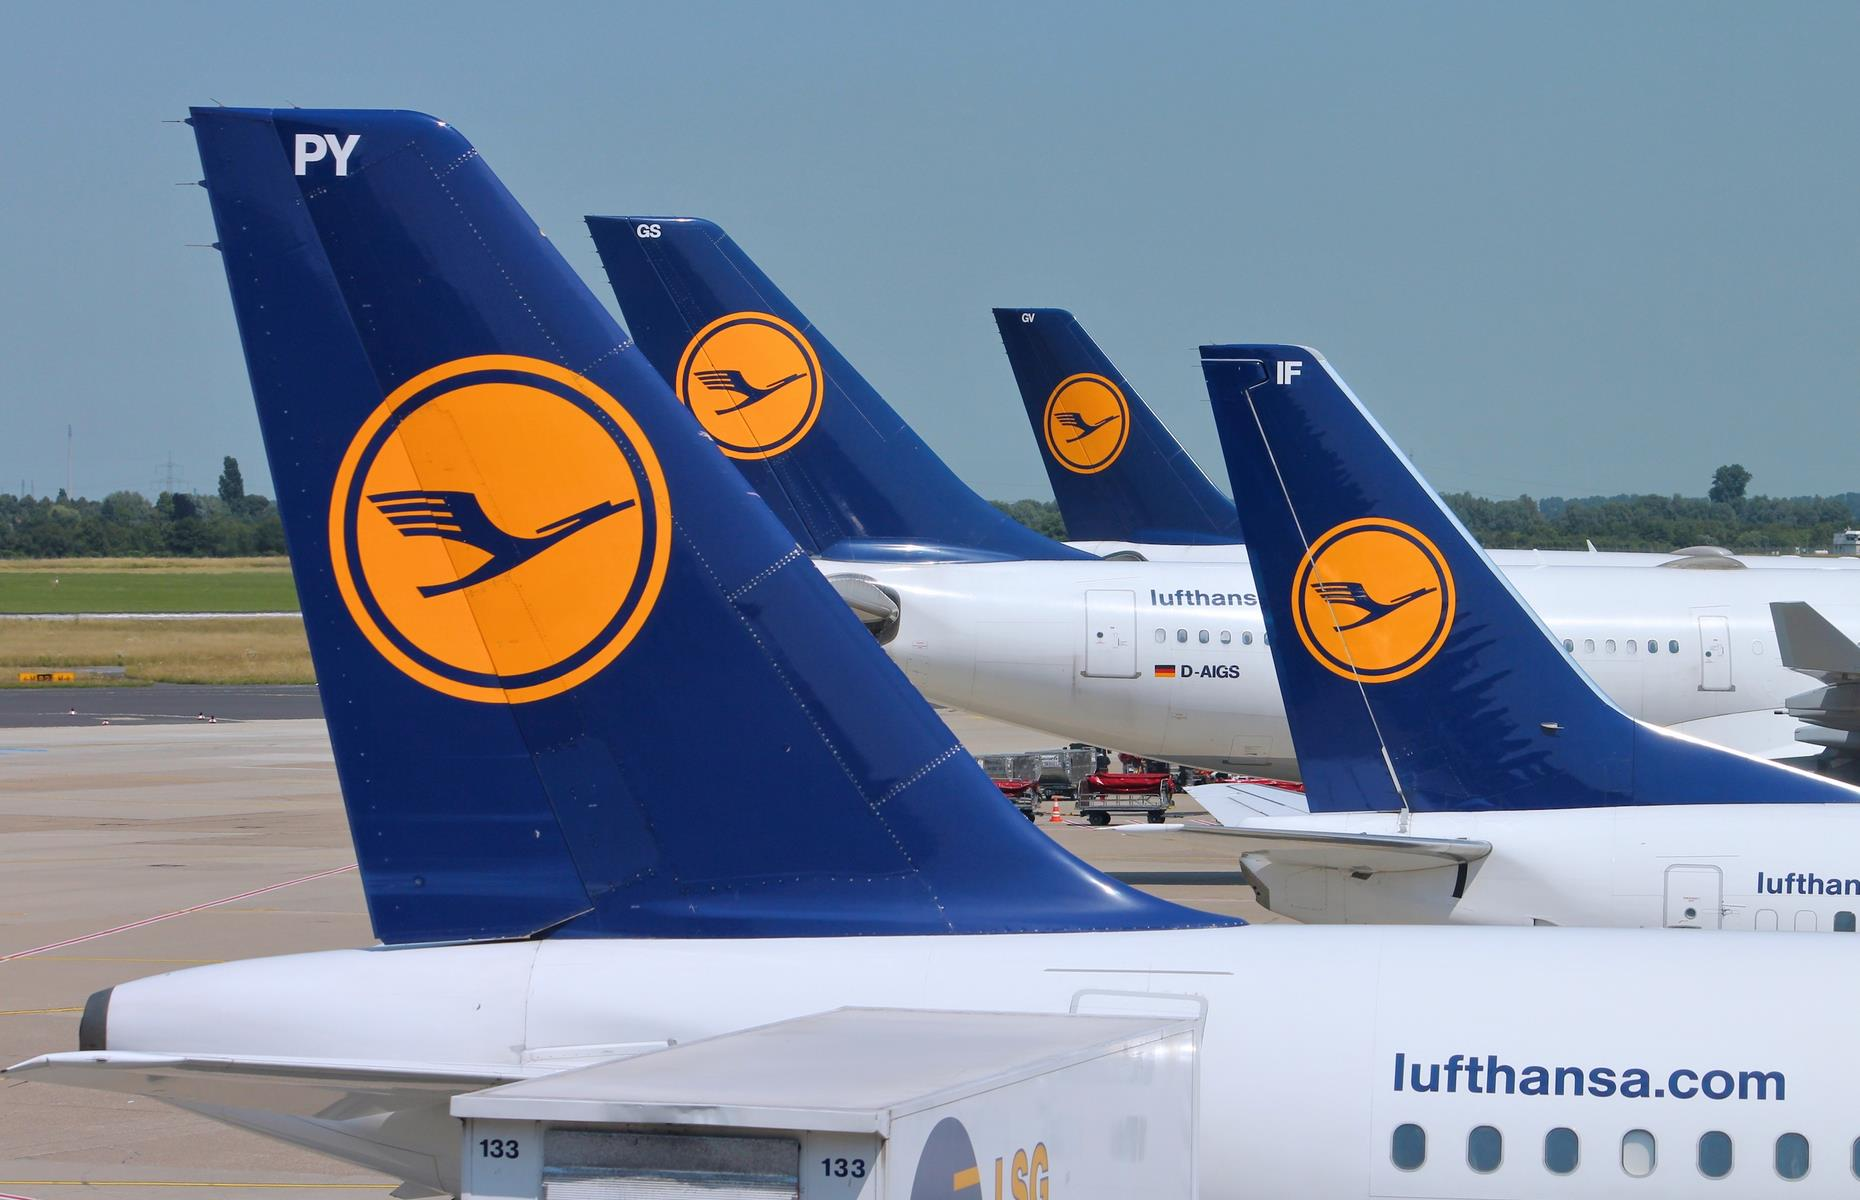 Slide 30 of 35: Lufthansa remains the only European carrier with a 5-star ranking from Skytrax, and the only one to crack the top 10of the World Airline Rankings. It was placed at number nine, thanks to its highly-rated customer experience and service.